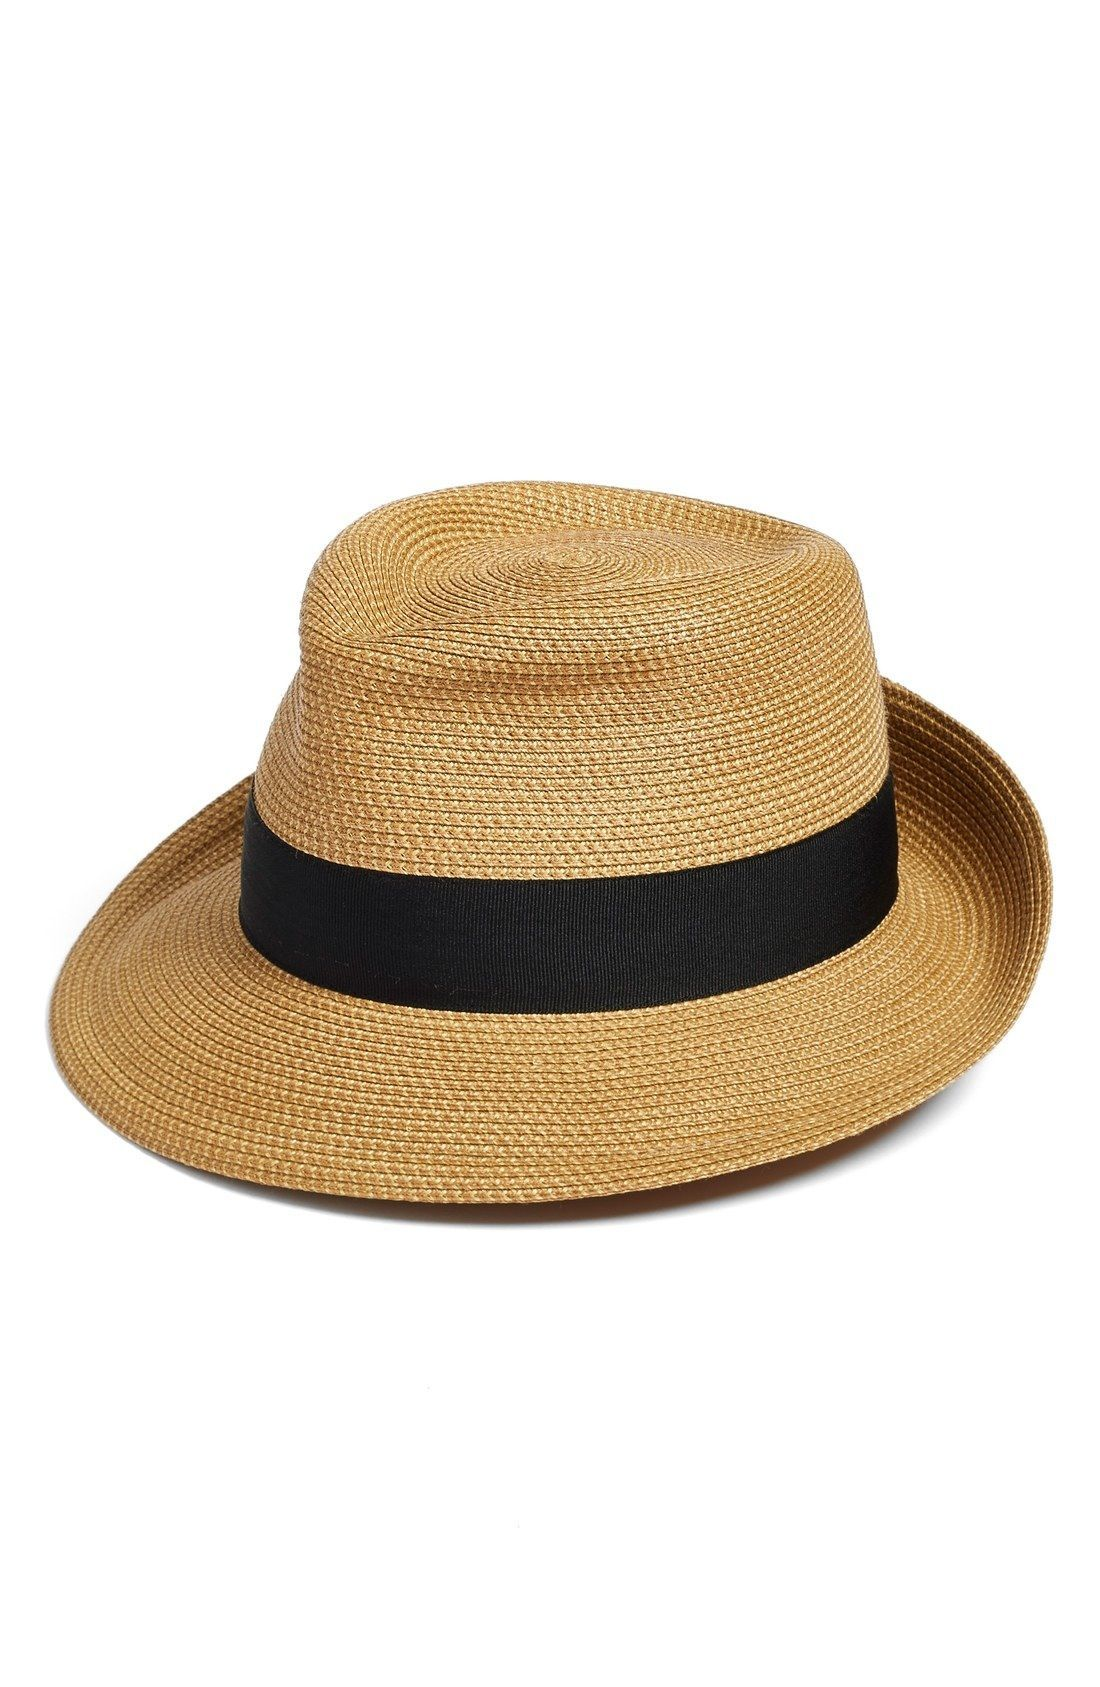 Eric Javits  Classic  Squishee® Packable Fedora Sun Hat available at   Nordstrom  sunhatsforwomenpackable 8a38e98324df